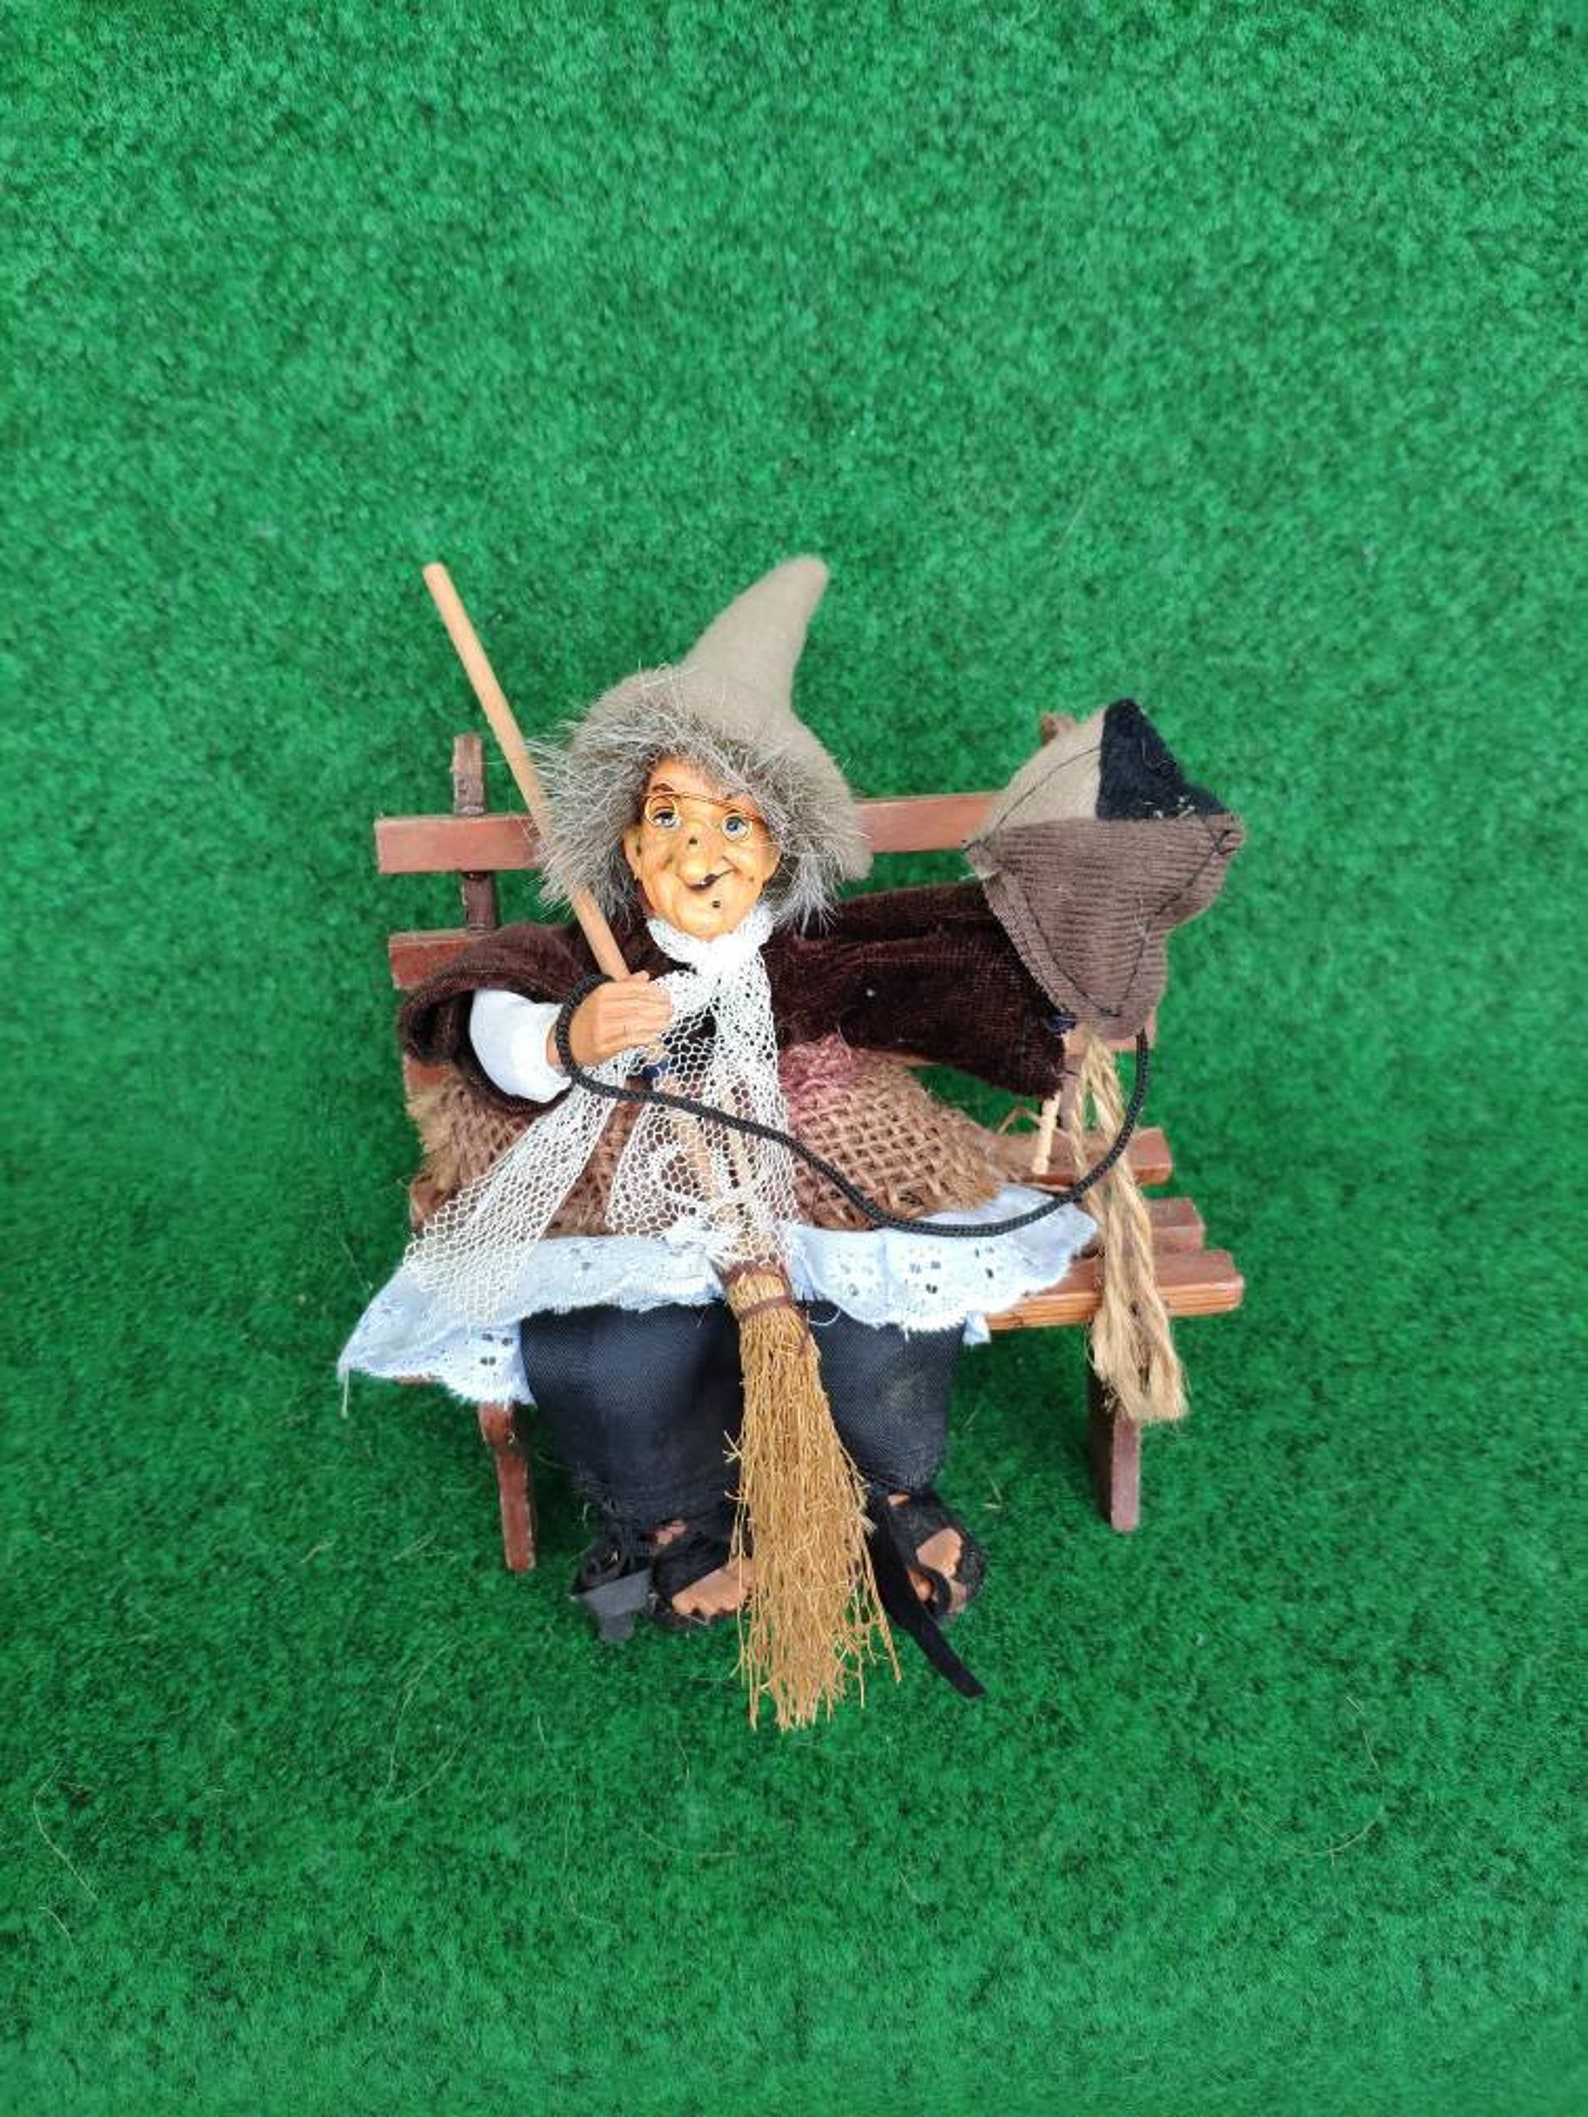 German Good luck Kitchen Witch doll on the bench Fairy Witch Figurine Retro Home decor Vintage witch doll